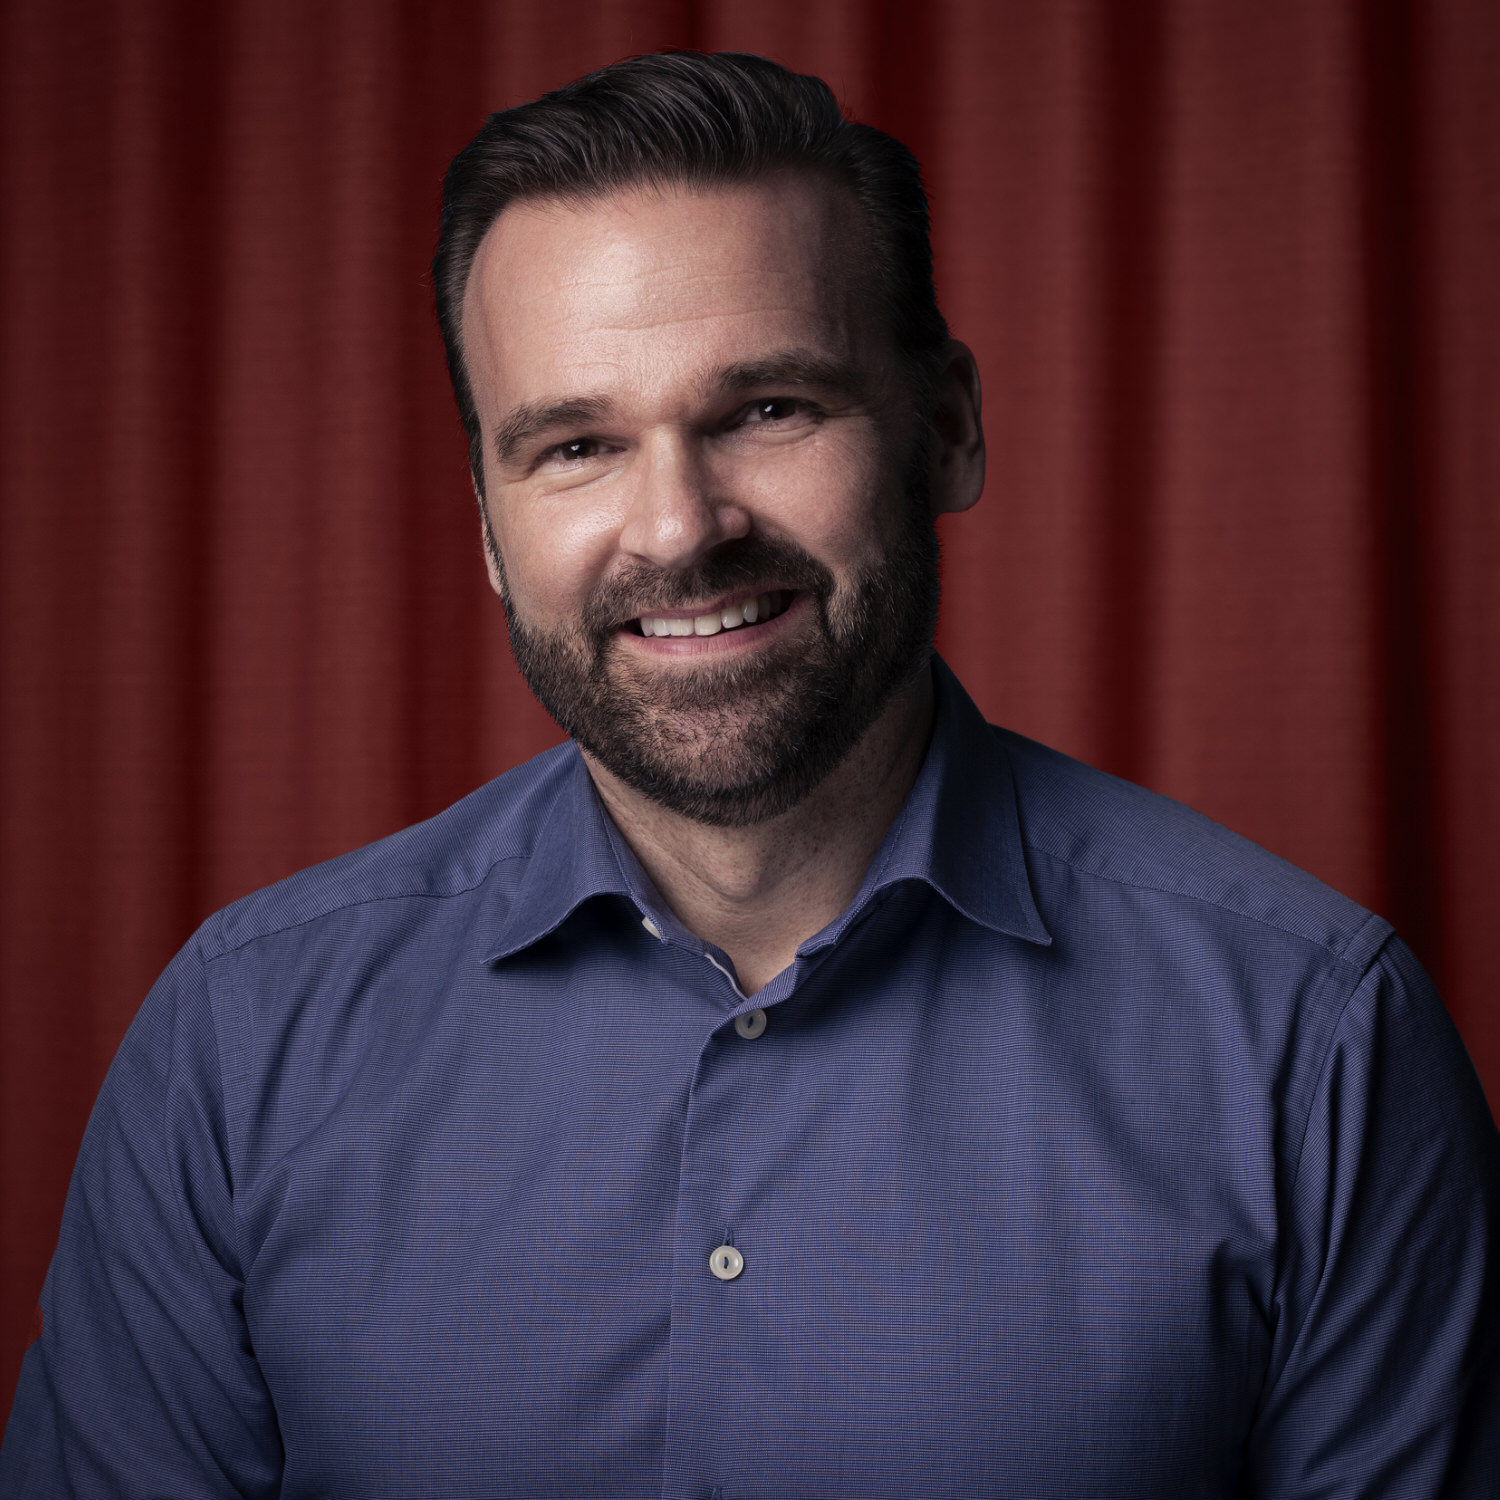 Picture of Christopher Engman, Author of the Megadeals Book and Co-Founder of Megadeals Advisory